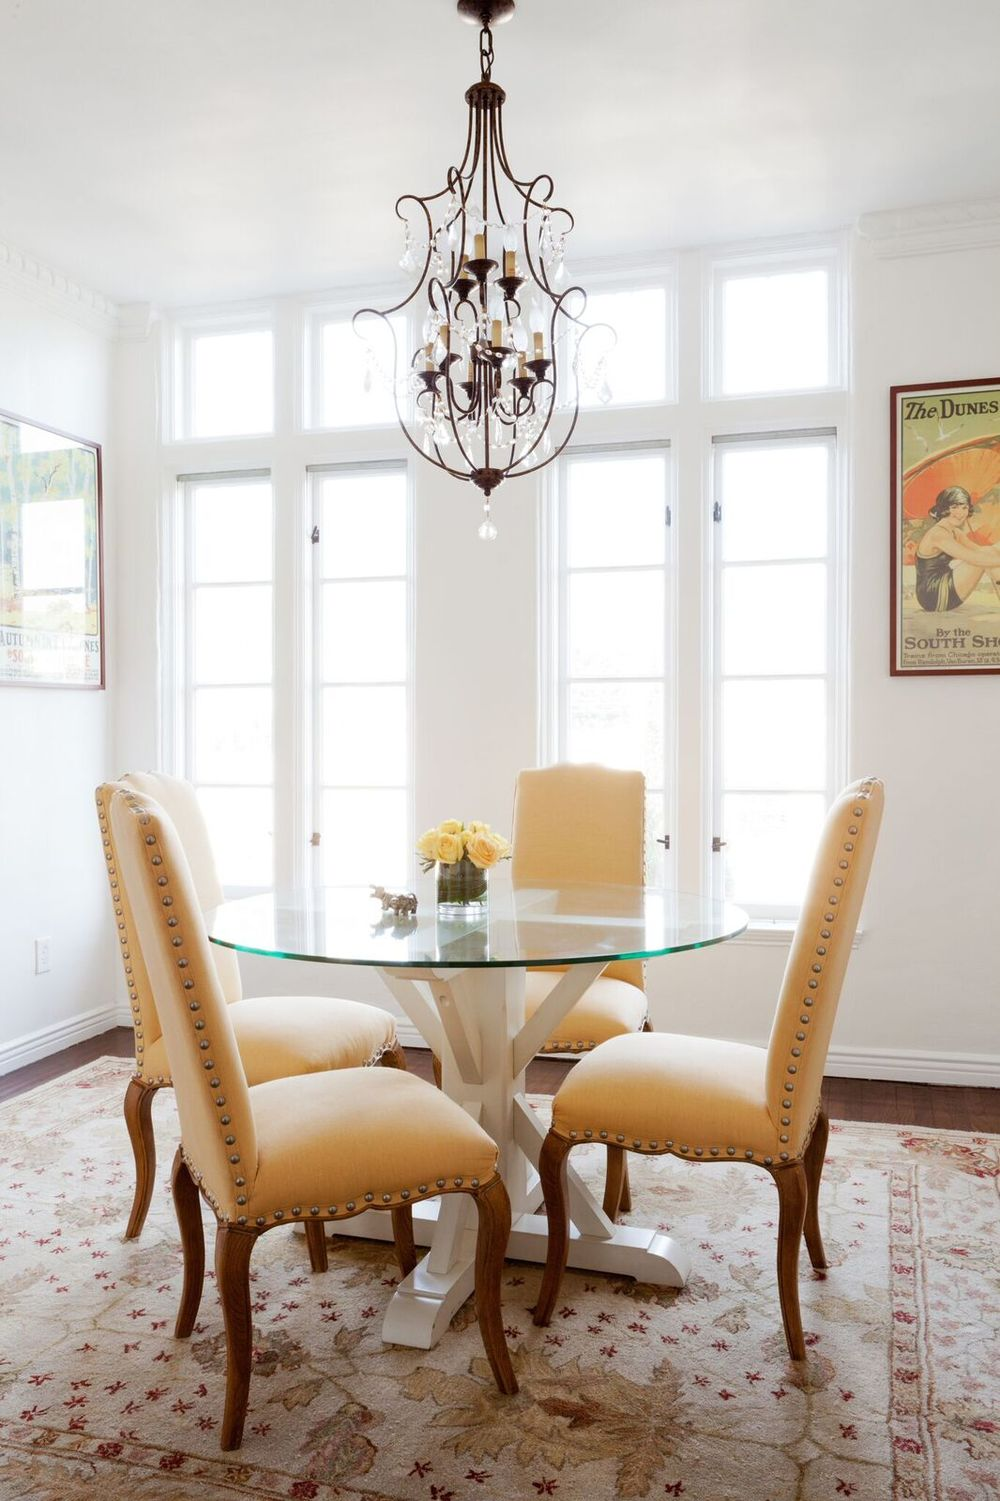 I decided not to dress the windows in the dining room so that it would always be filled with warm light. The chandelier does the job at night. The dining chairs were upholstered in sunny yellow linen that had been used as draperies in the client's previous apartment. An antique (and super soft) rug and four South Shore Line prints finish the space.